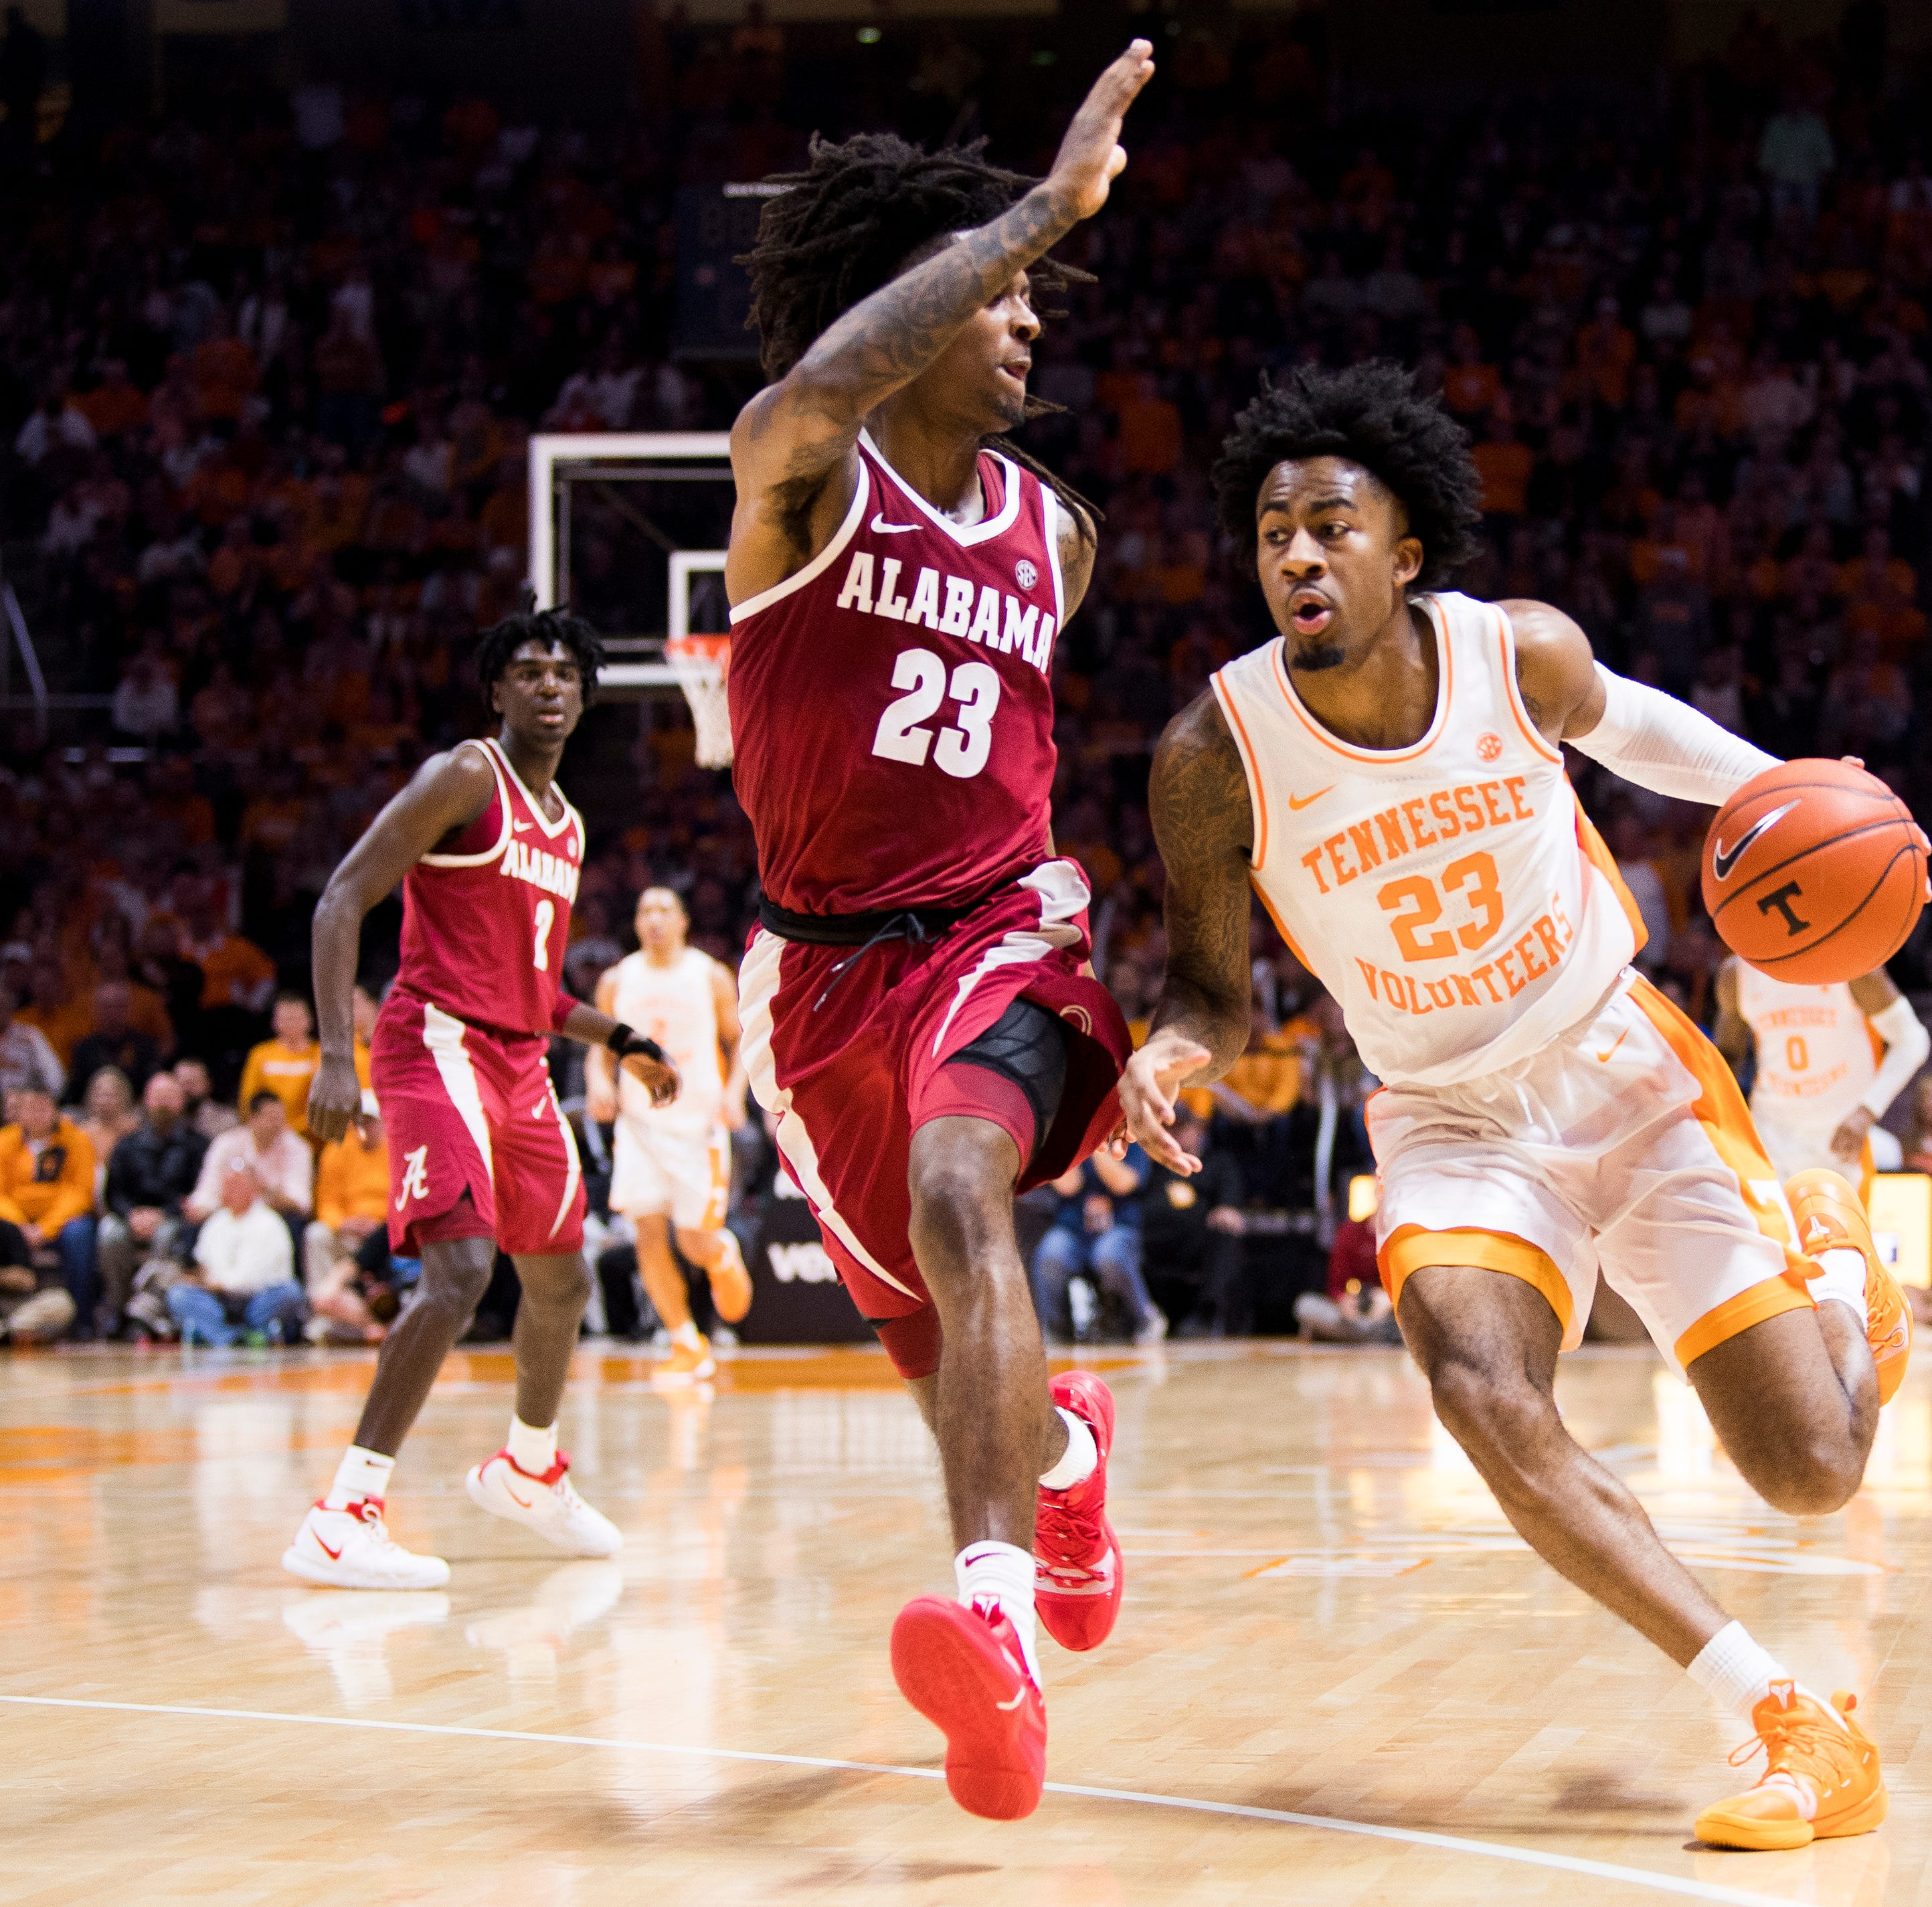 UT Vols: An Alabama scare shouldn't keep Tennessee from advancing in the polls